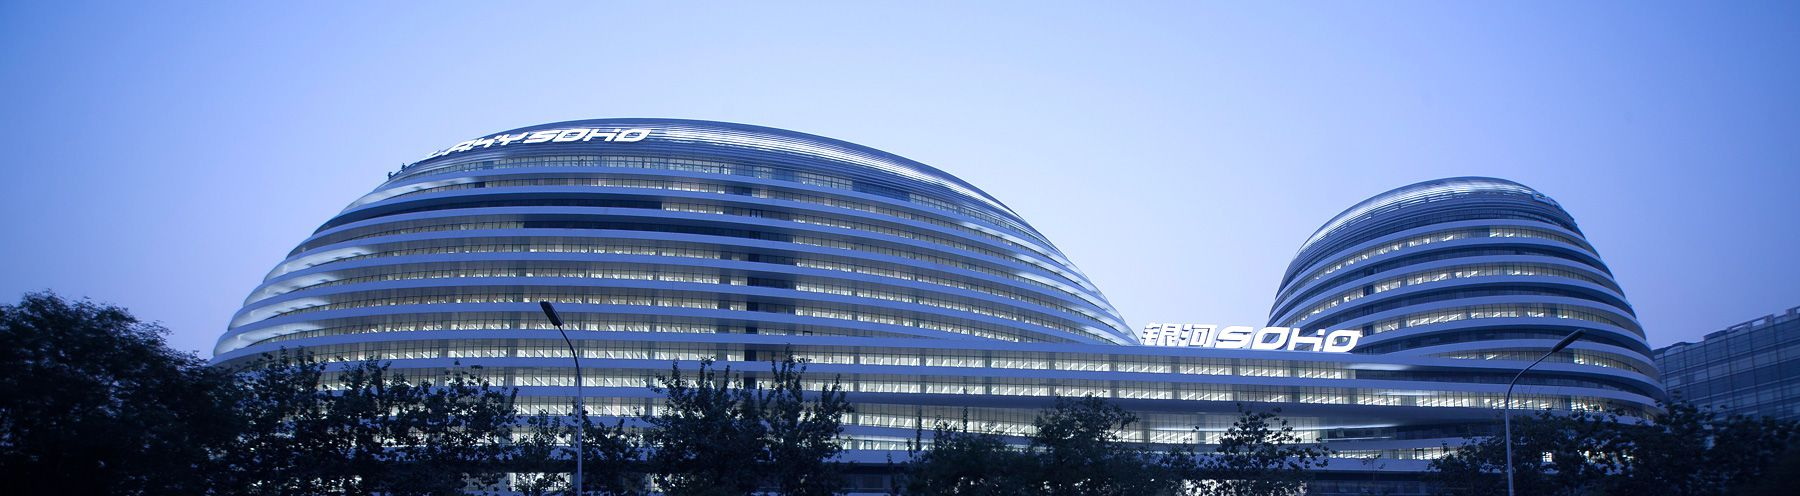 china-it-curtainwall_title